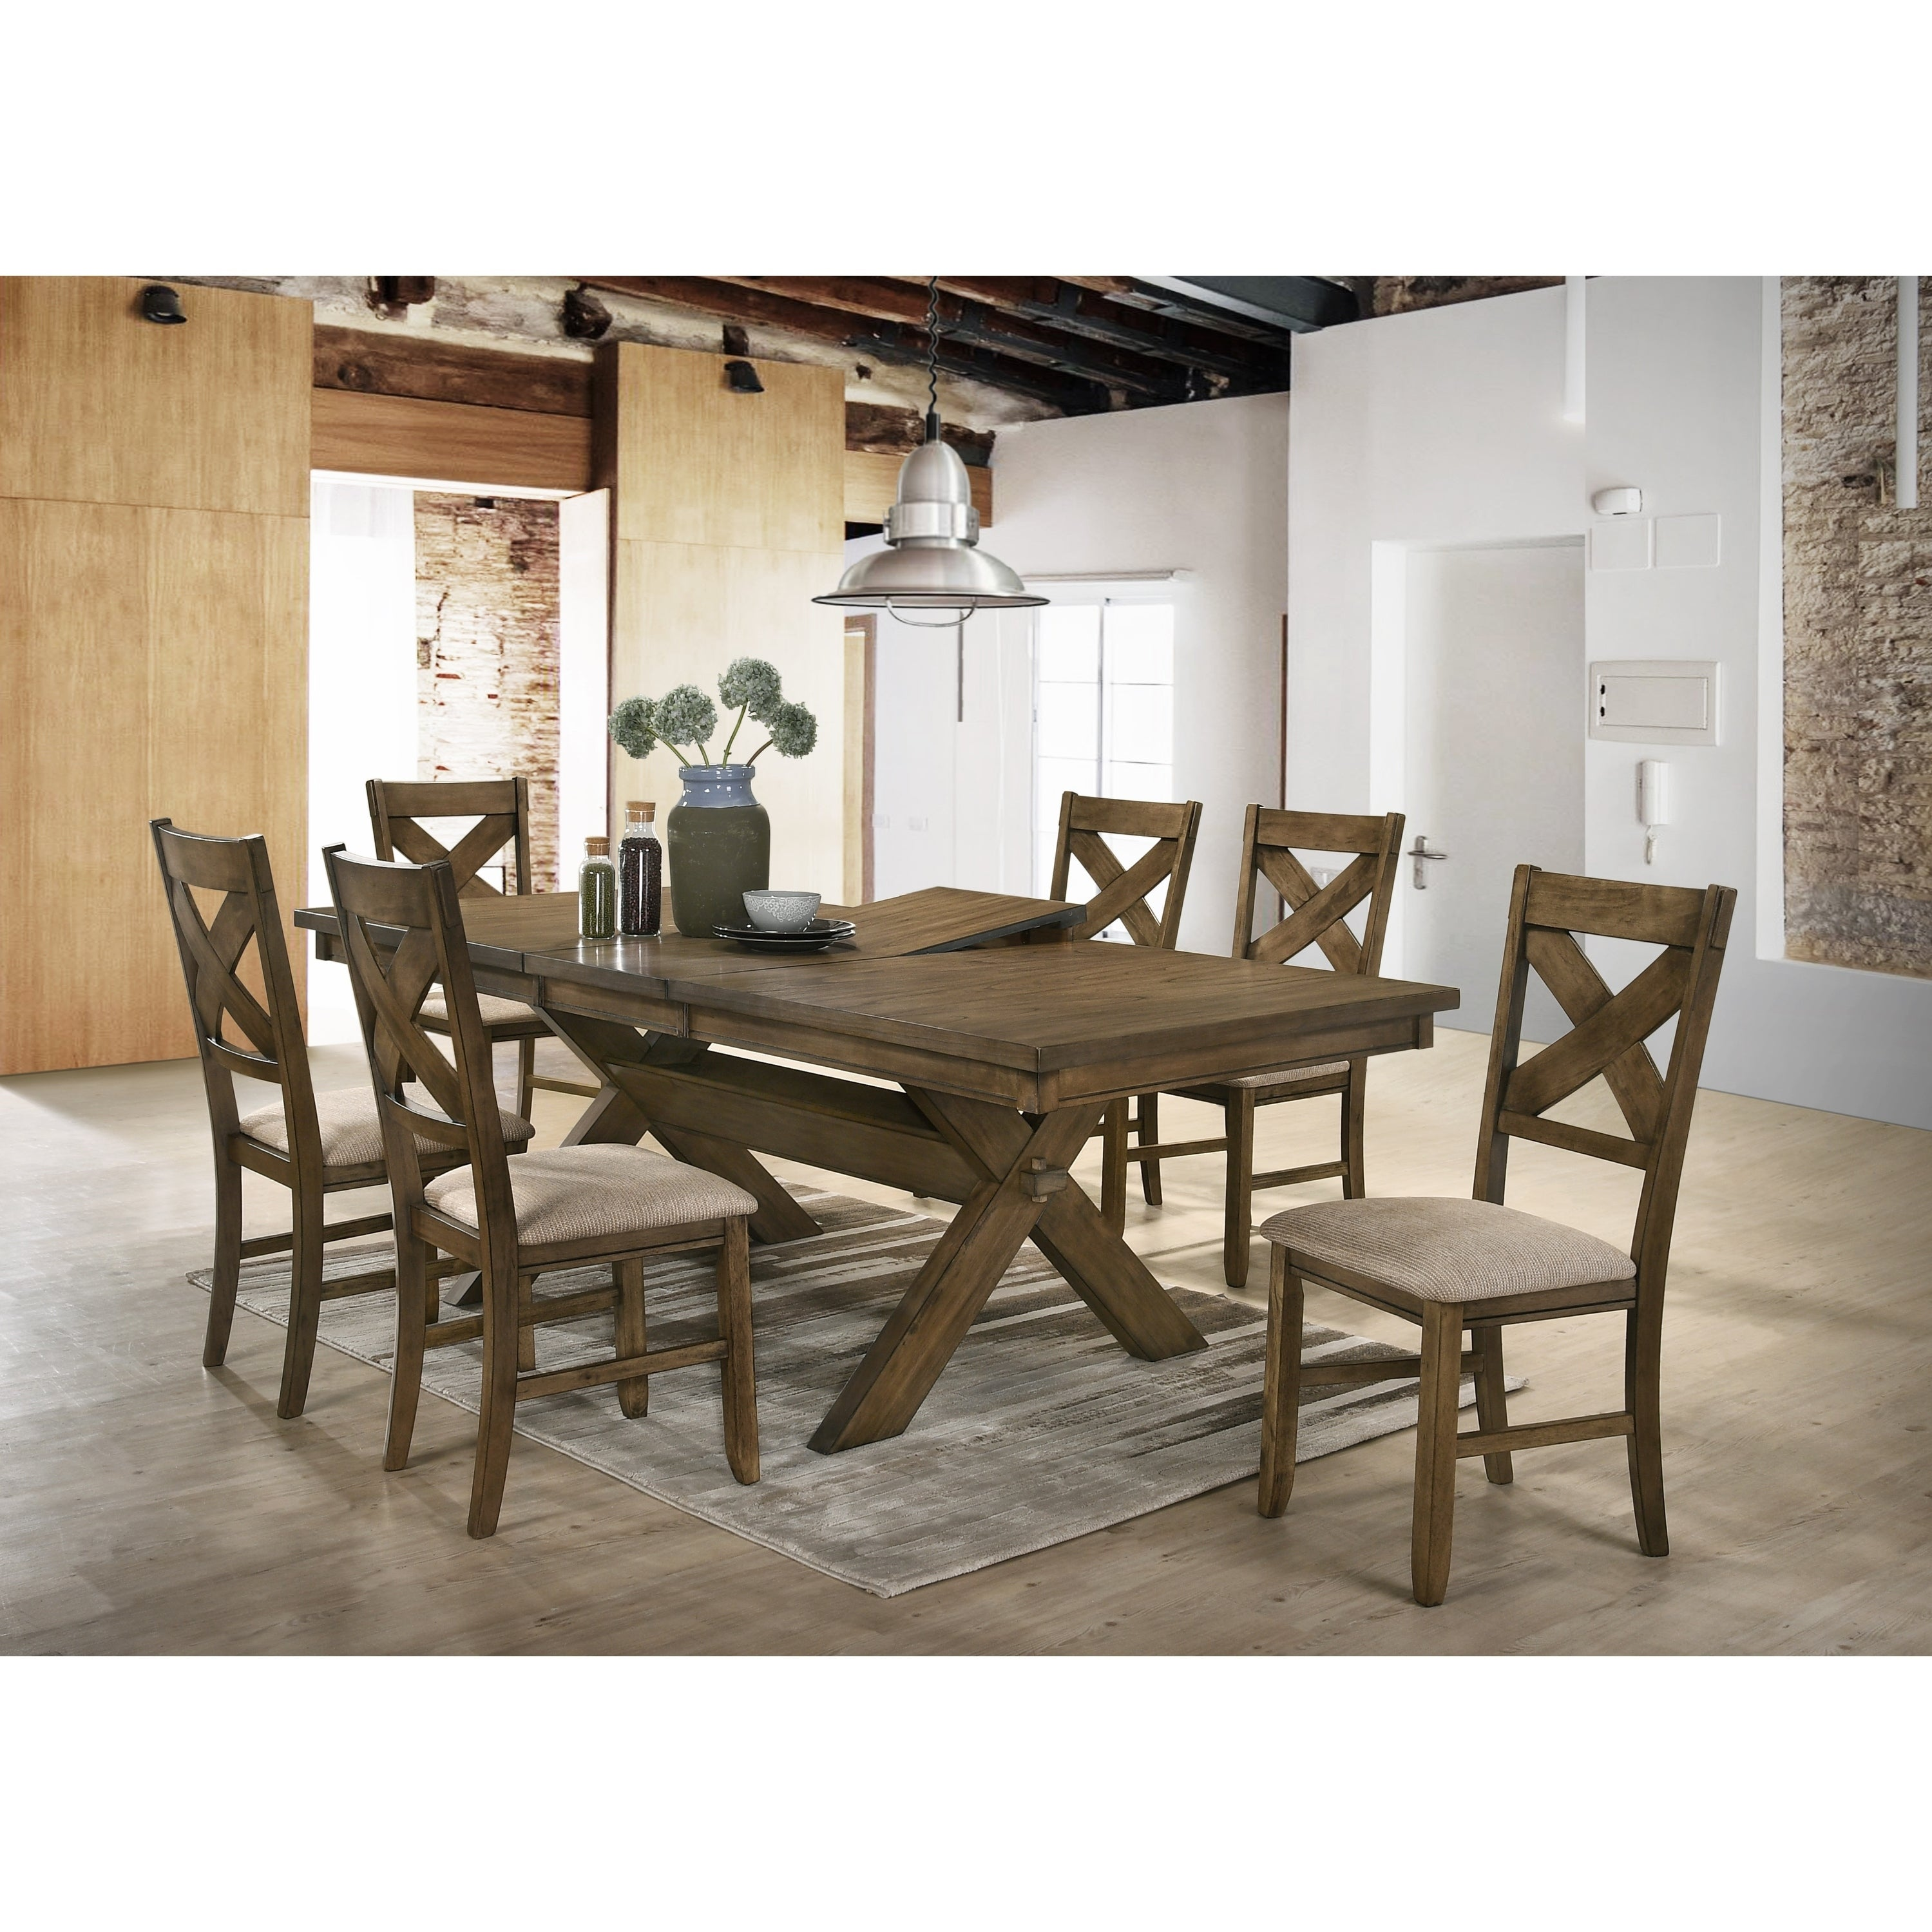 Raven Wood Dining Set Erfly Leaf Table Six Chairs